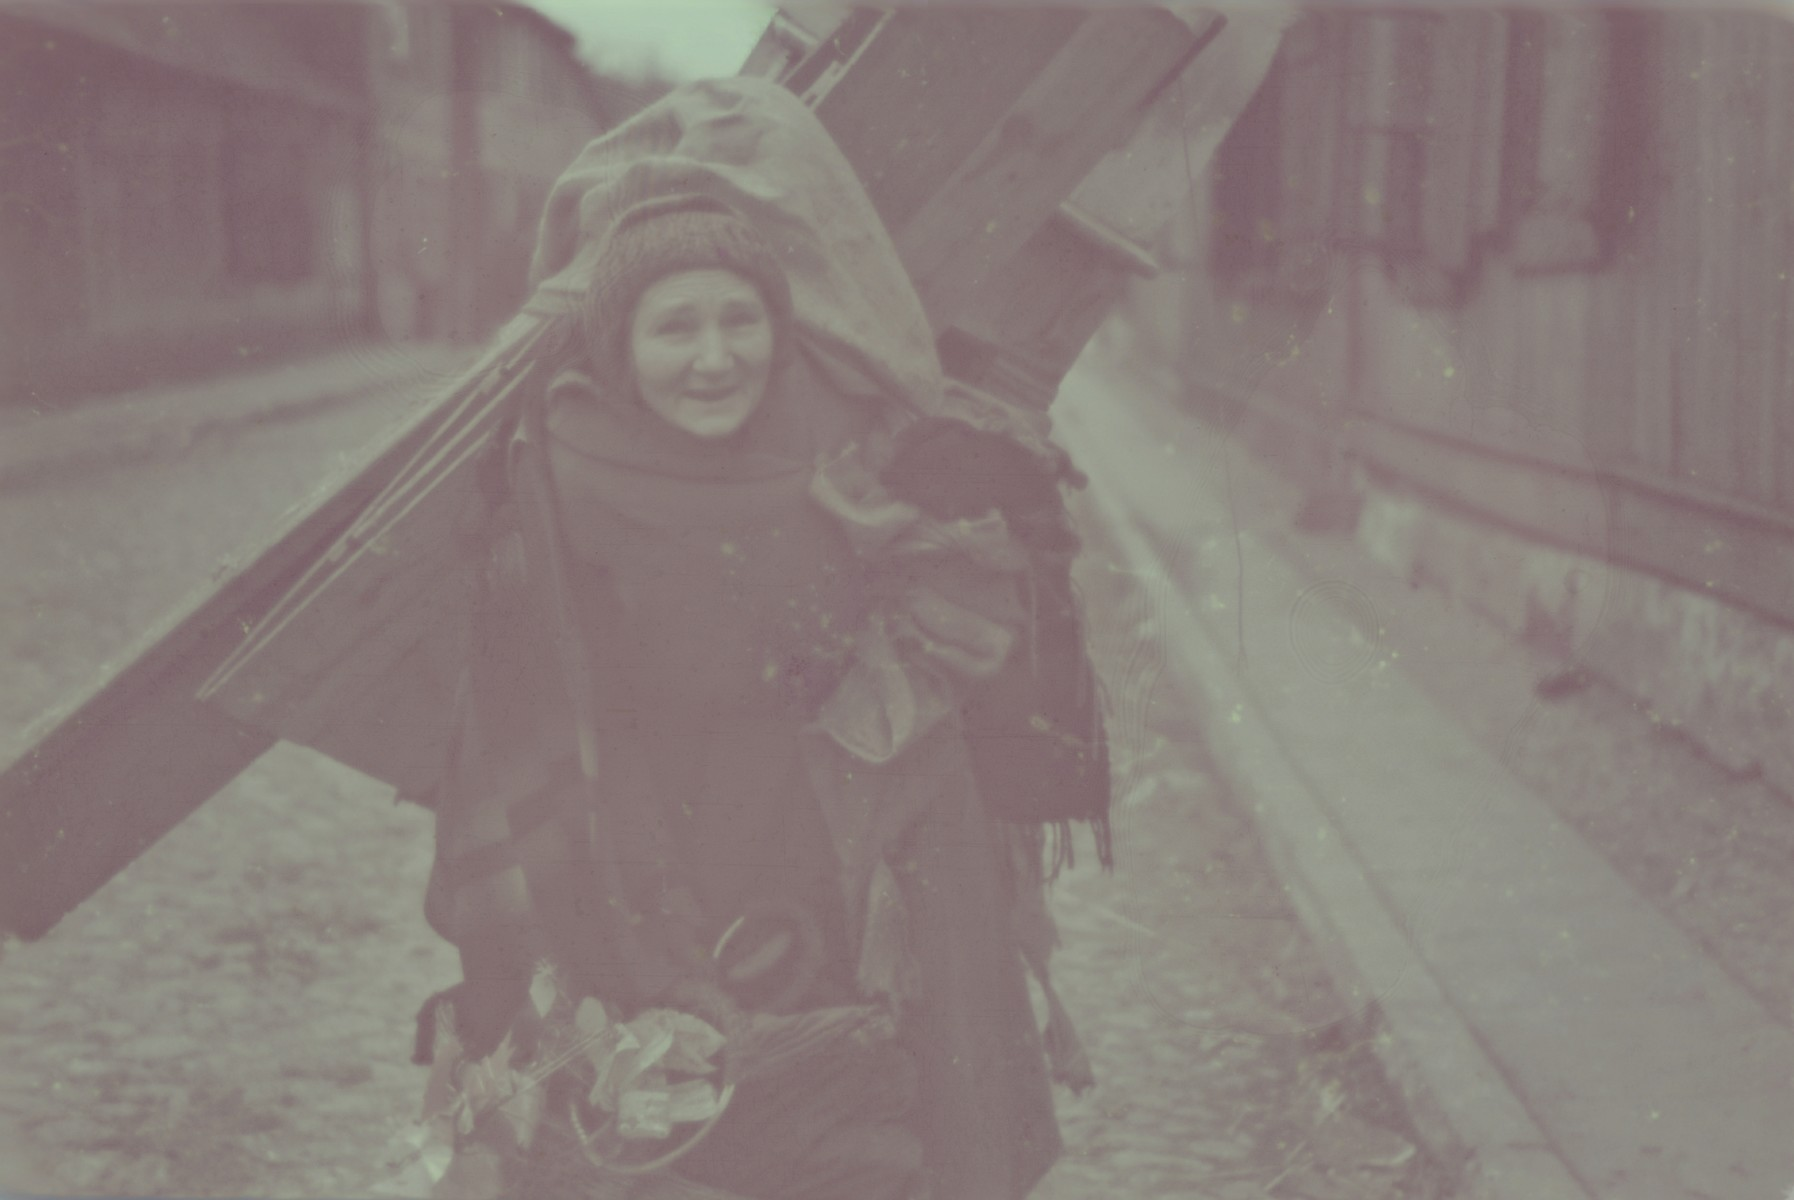 A Jewish woman carries large bundles and wooden planks on her back while walking down a street in the Lodz ghetto.